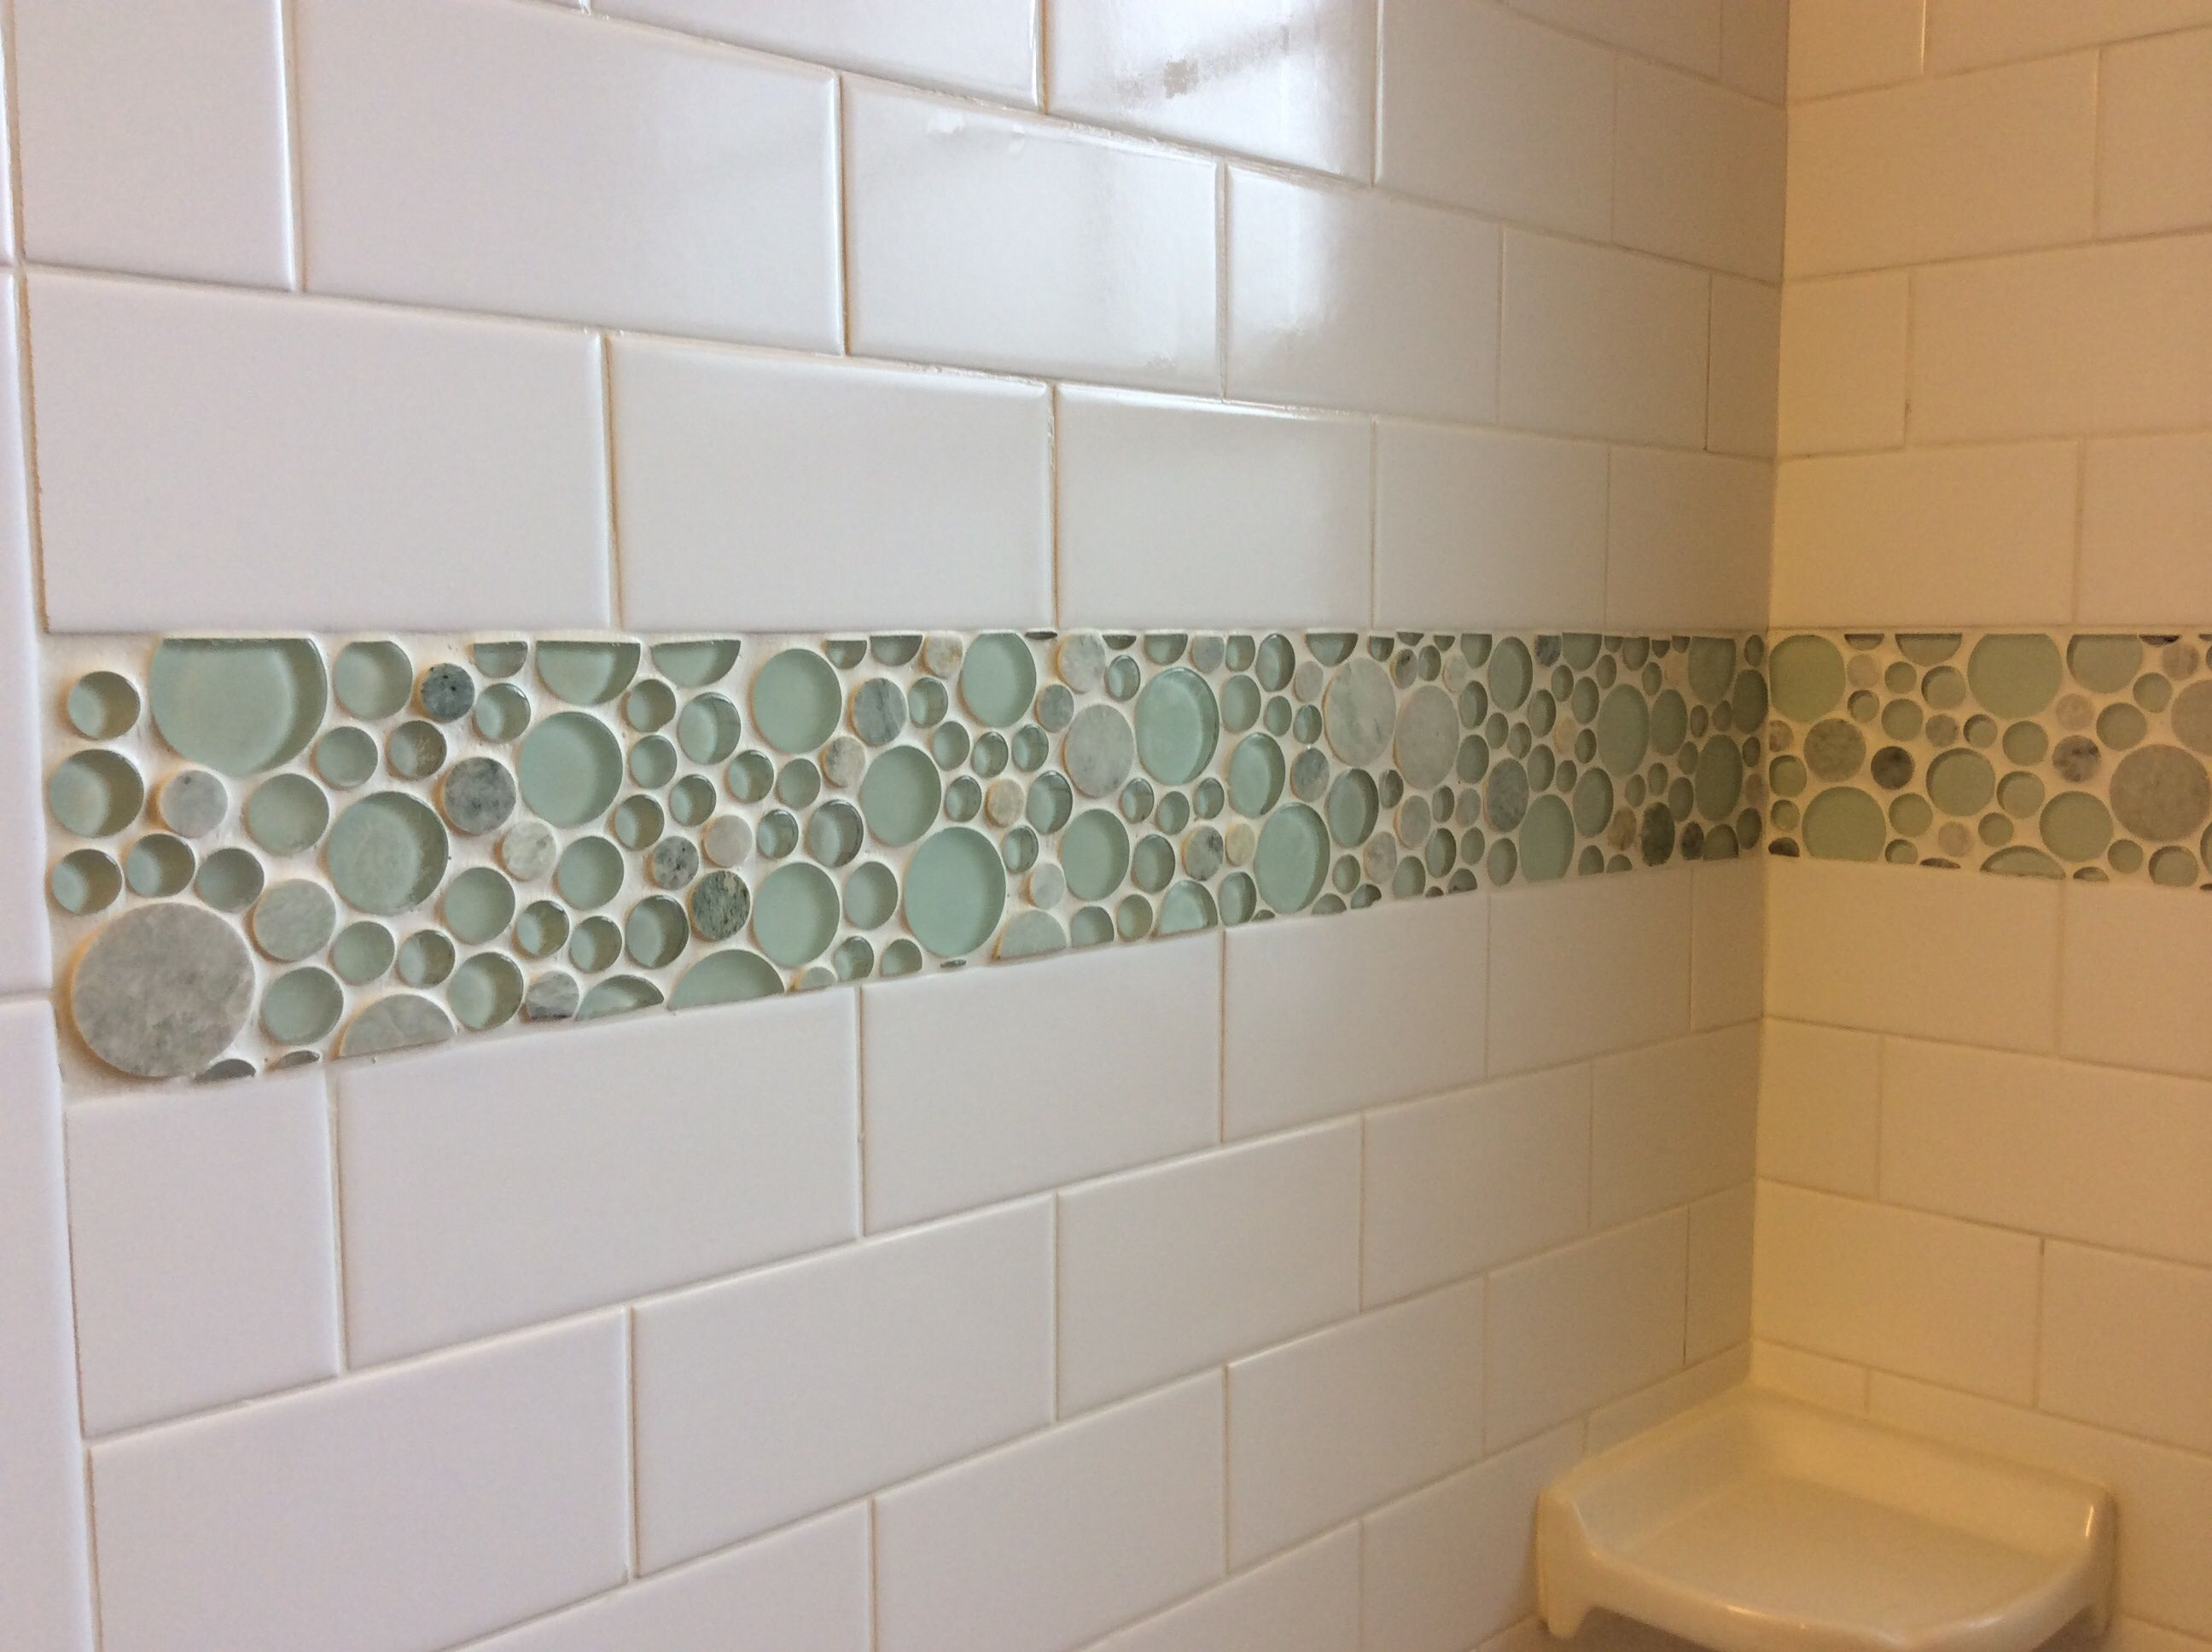 Subway Tile With Bubble Accent In 2019 White